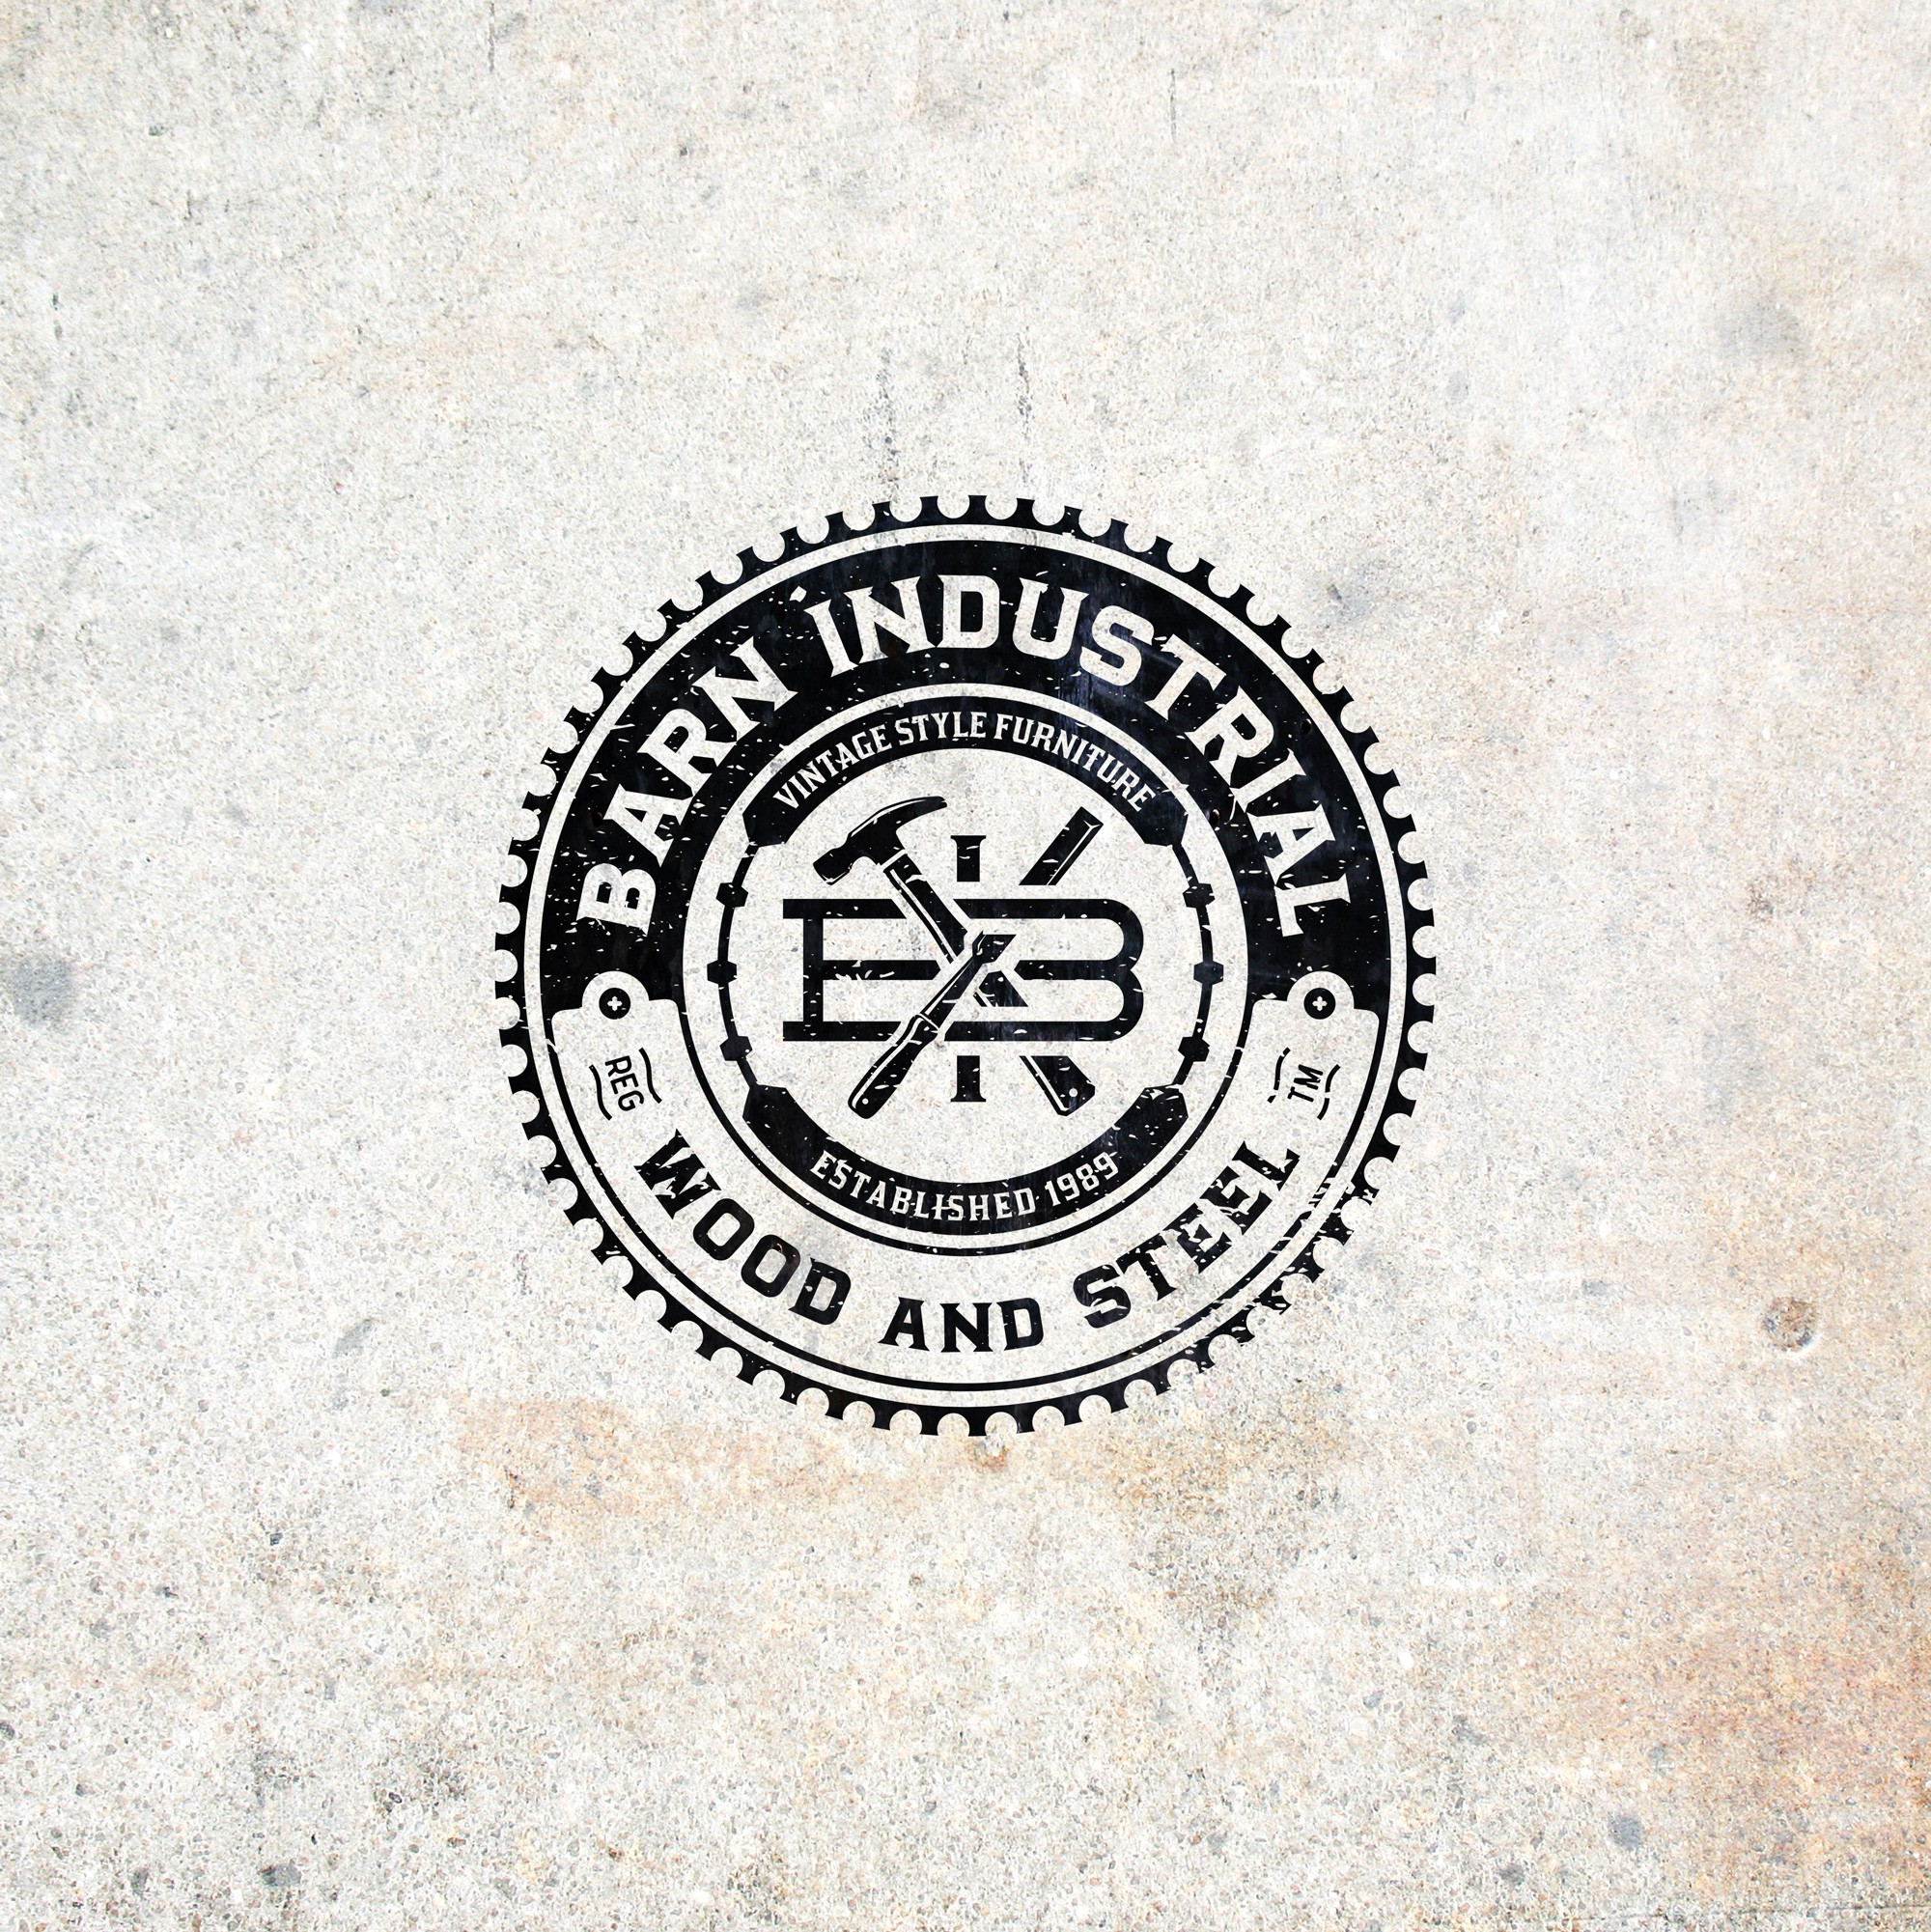 create a simple but effective logo that illustrates industrial wood and steel items we build